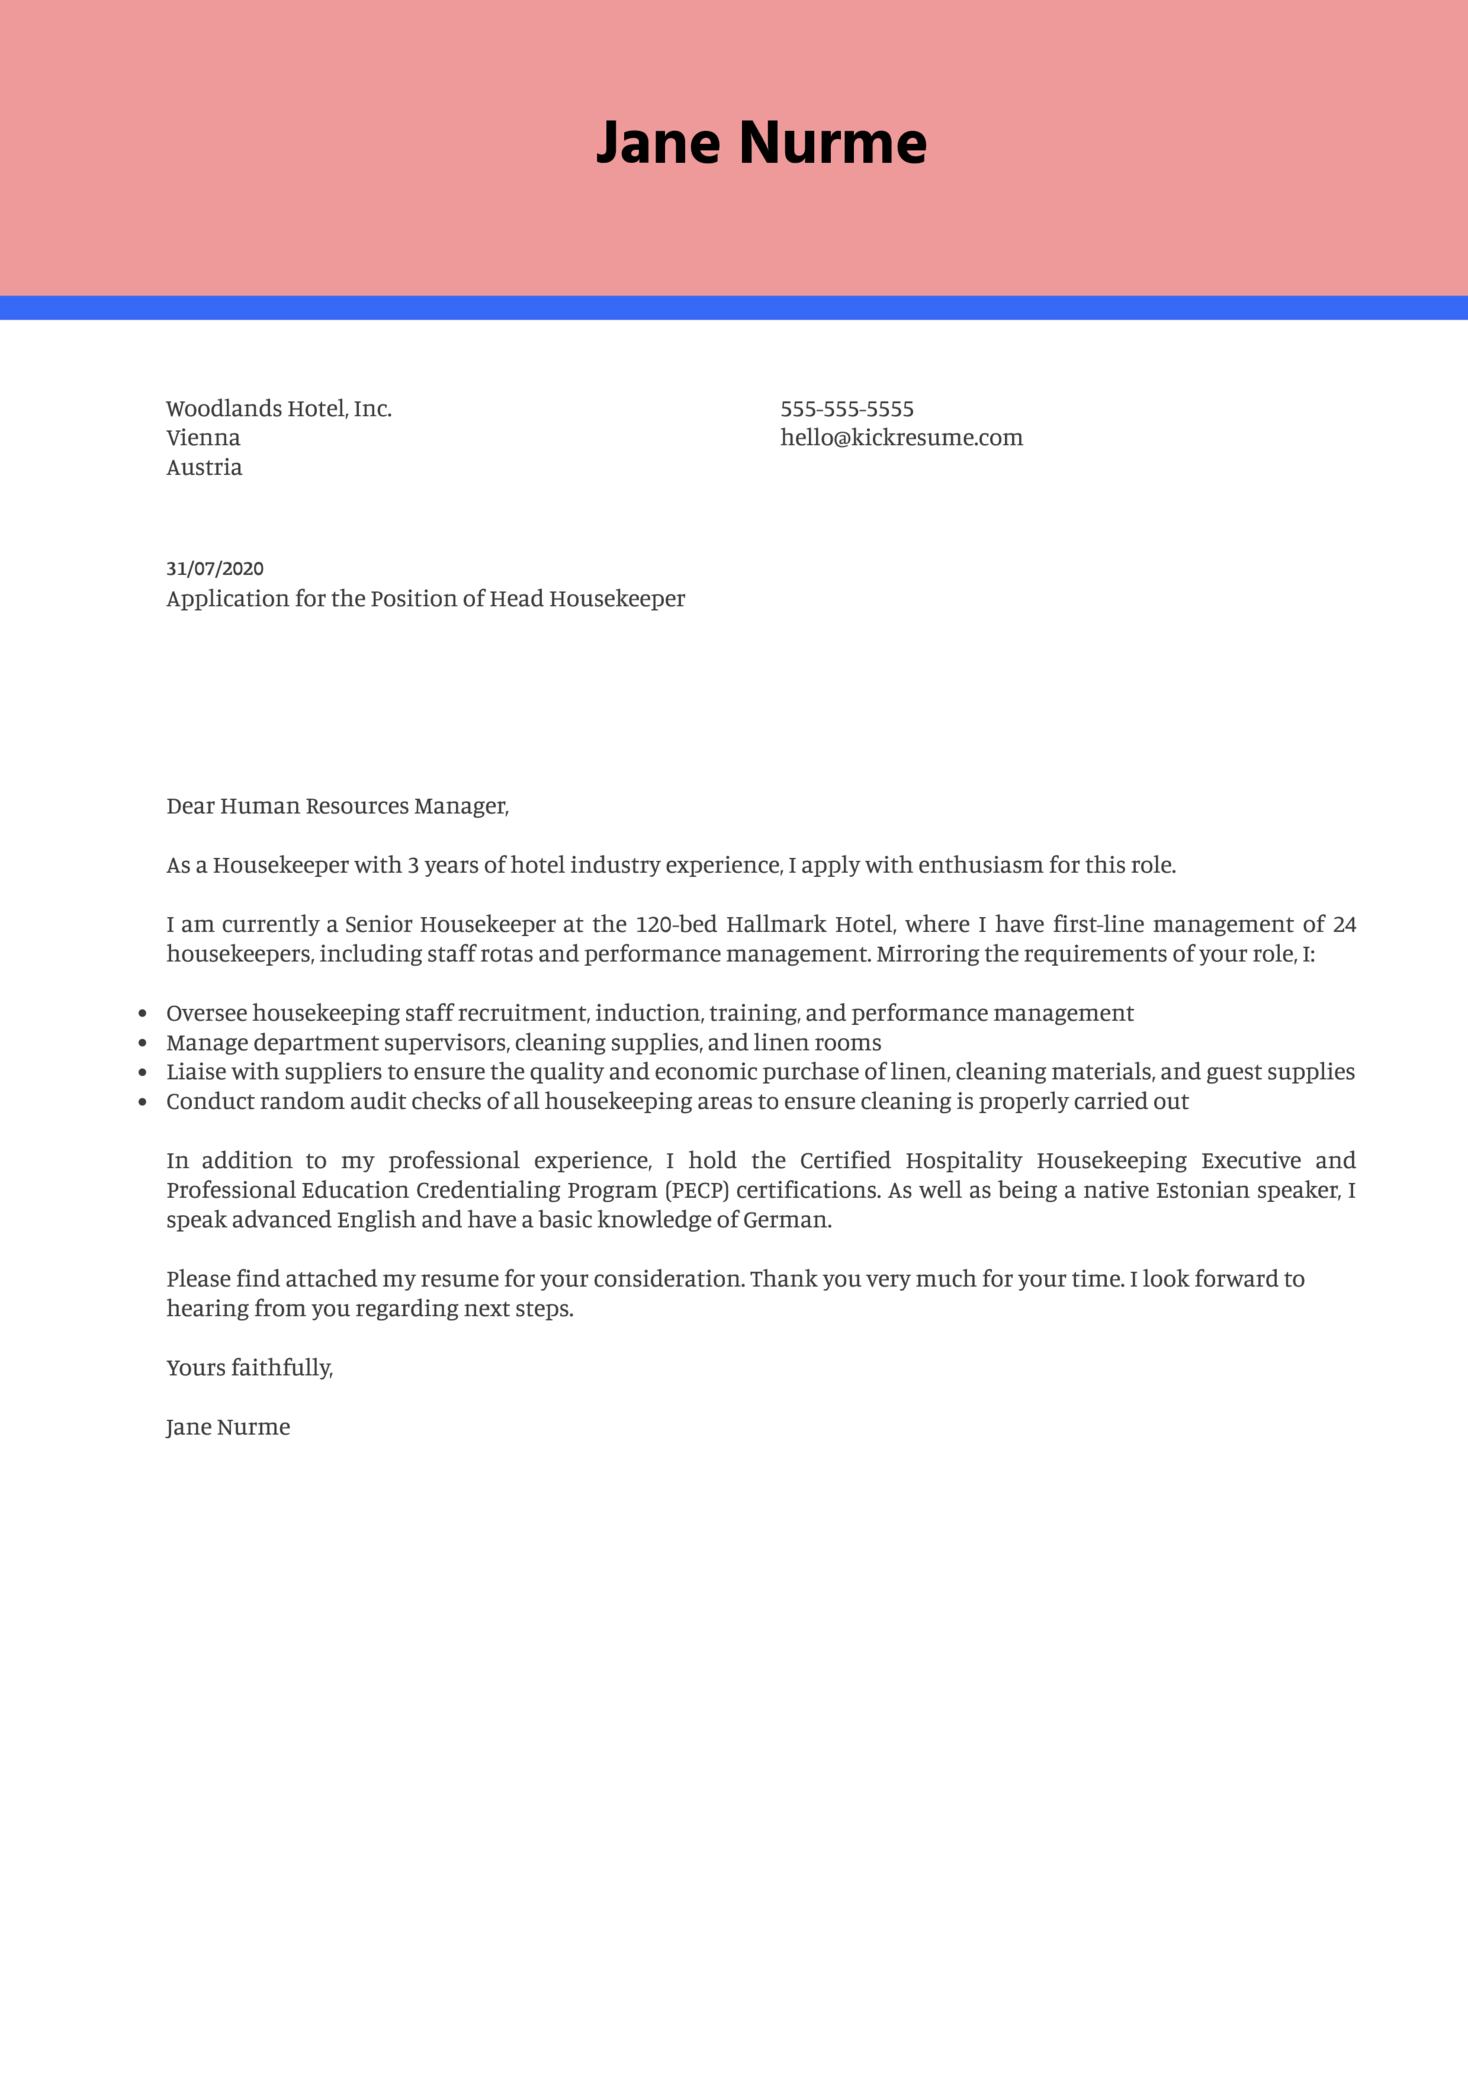 Head Housekeeper Cover Letter Example